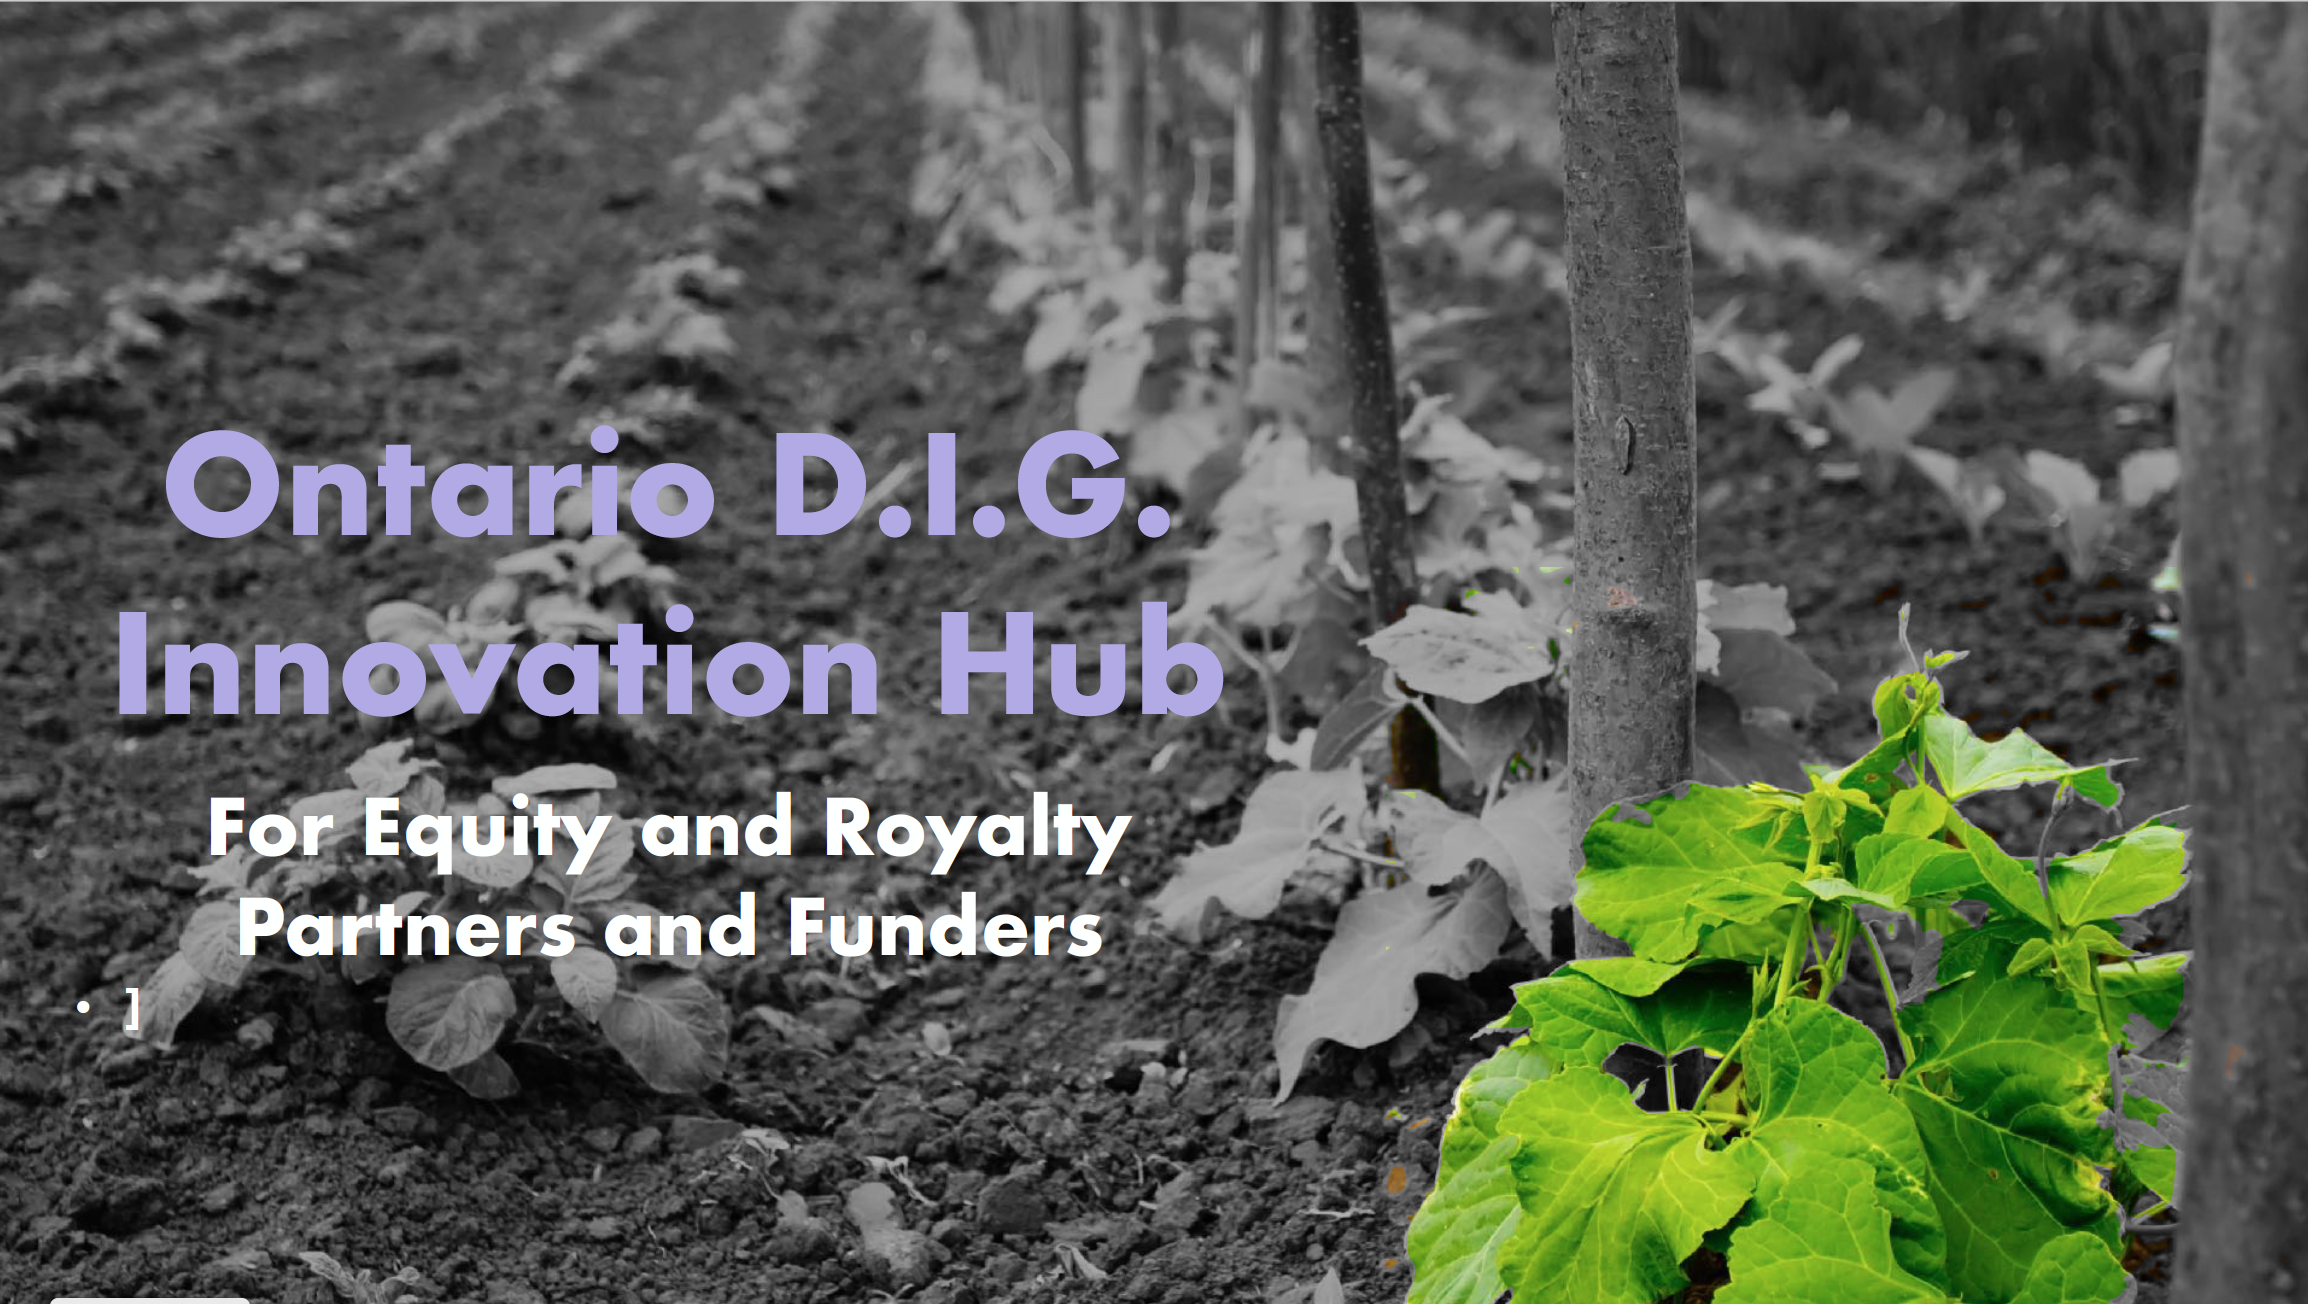 Click on the image to view the presentation and learn about how you can partner with us in the Innovation Hub.